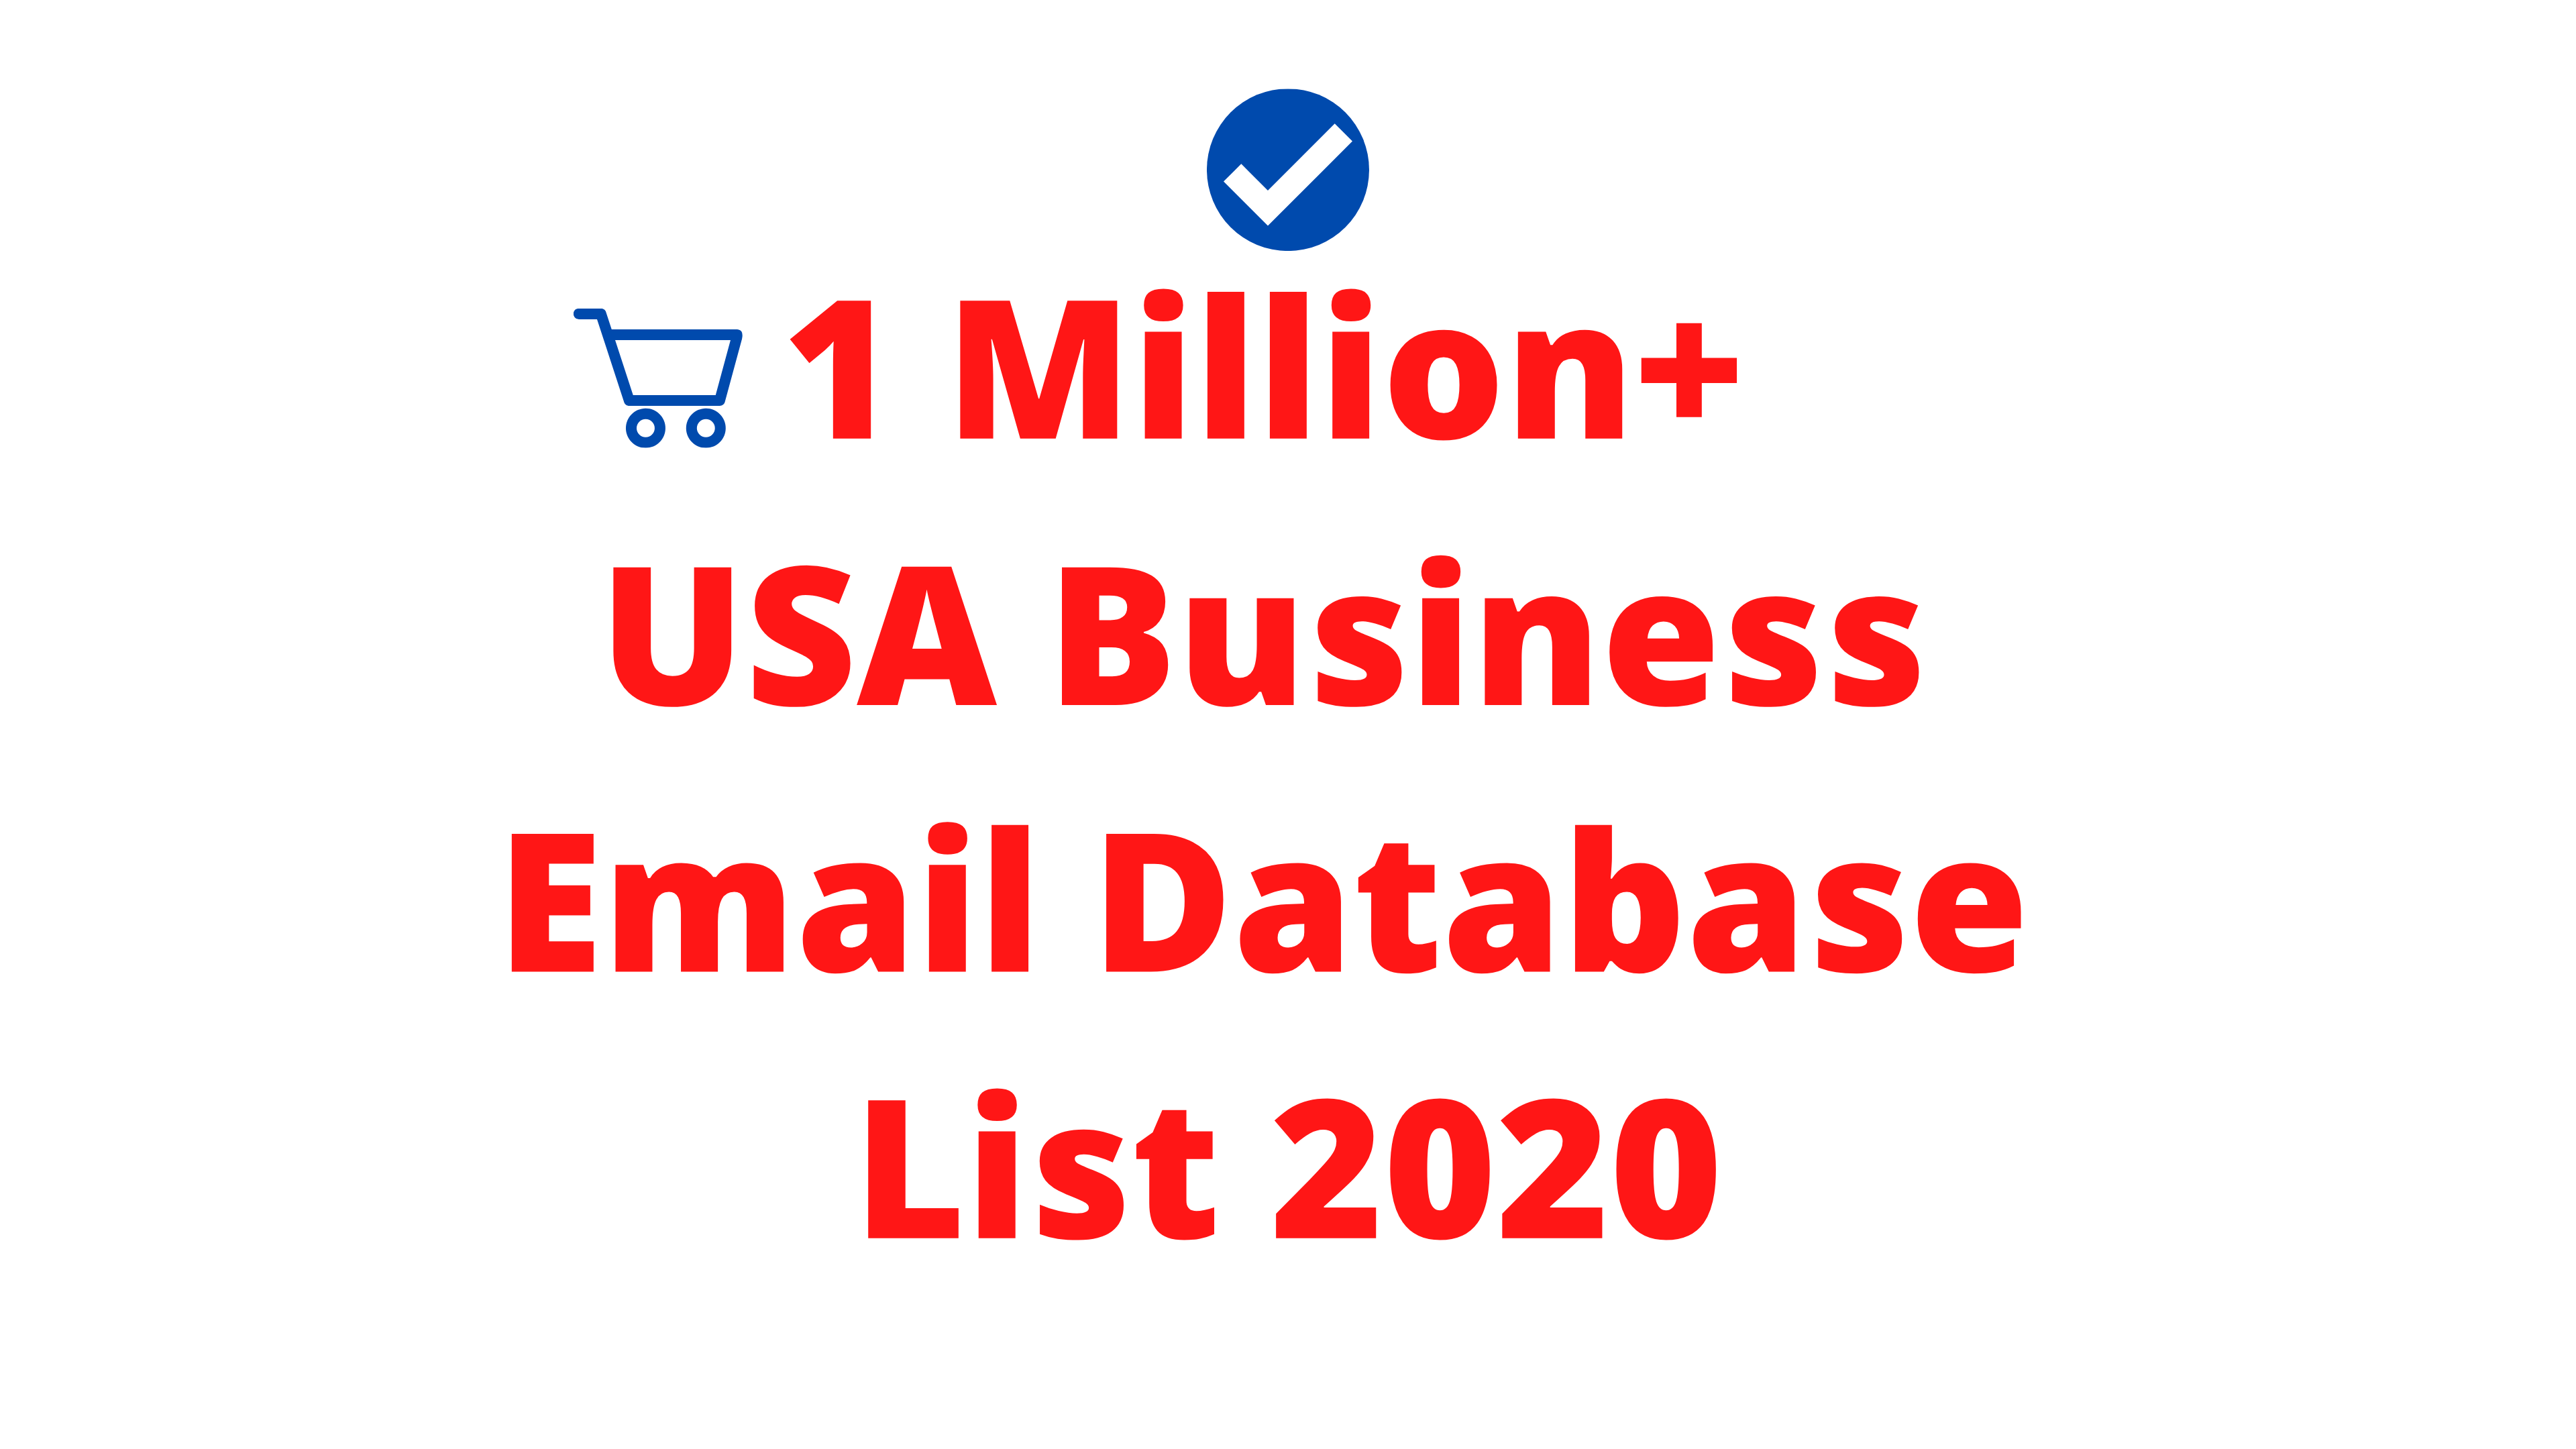 1 Million+ USA Business Email Database List Detail Include 2020